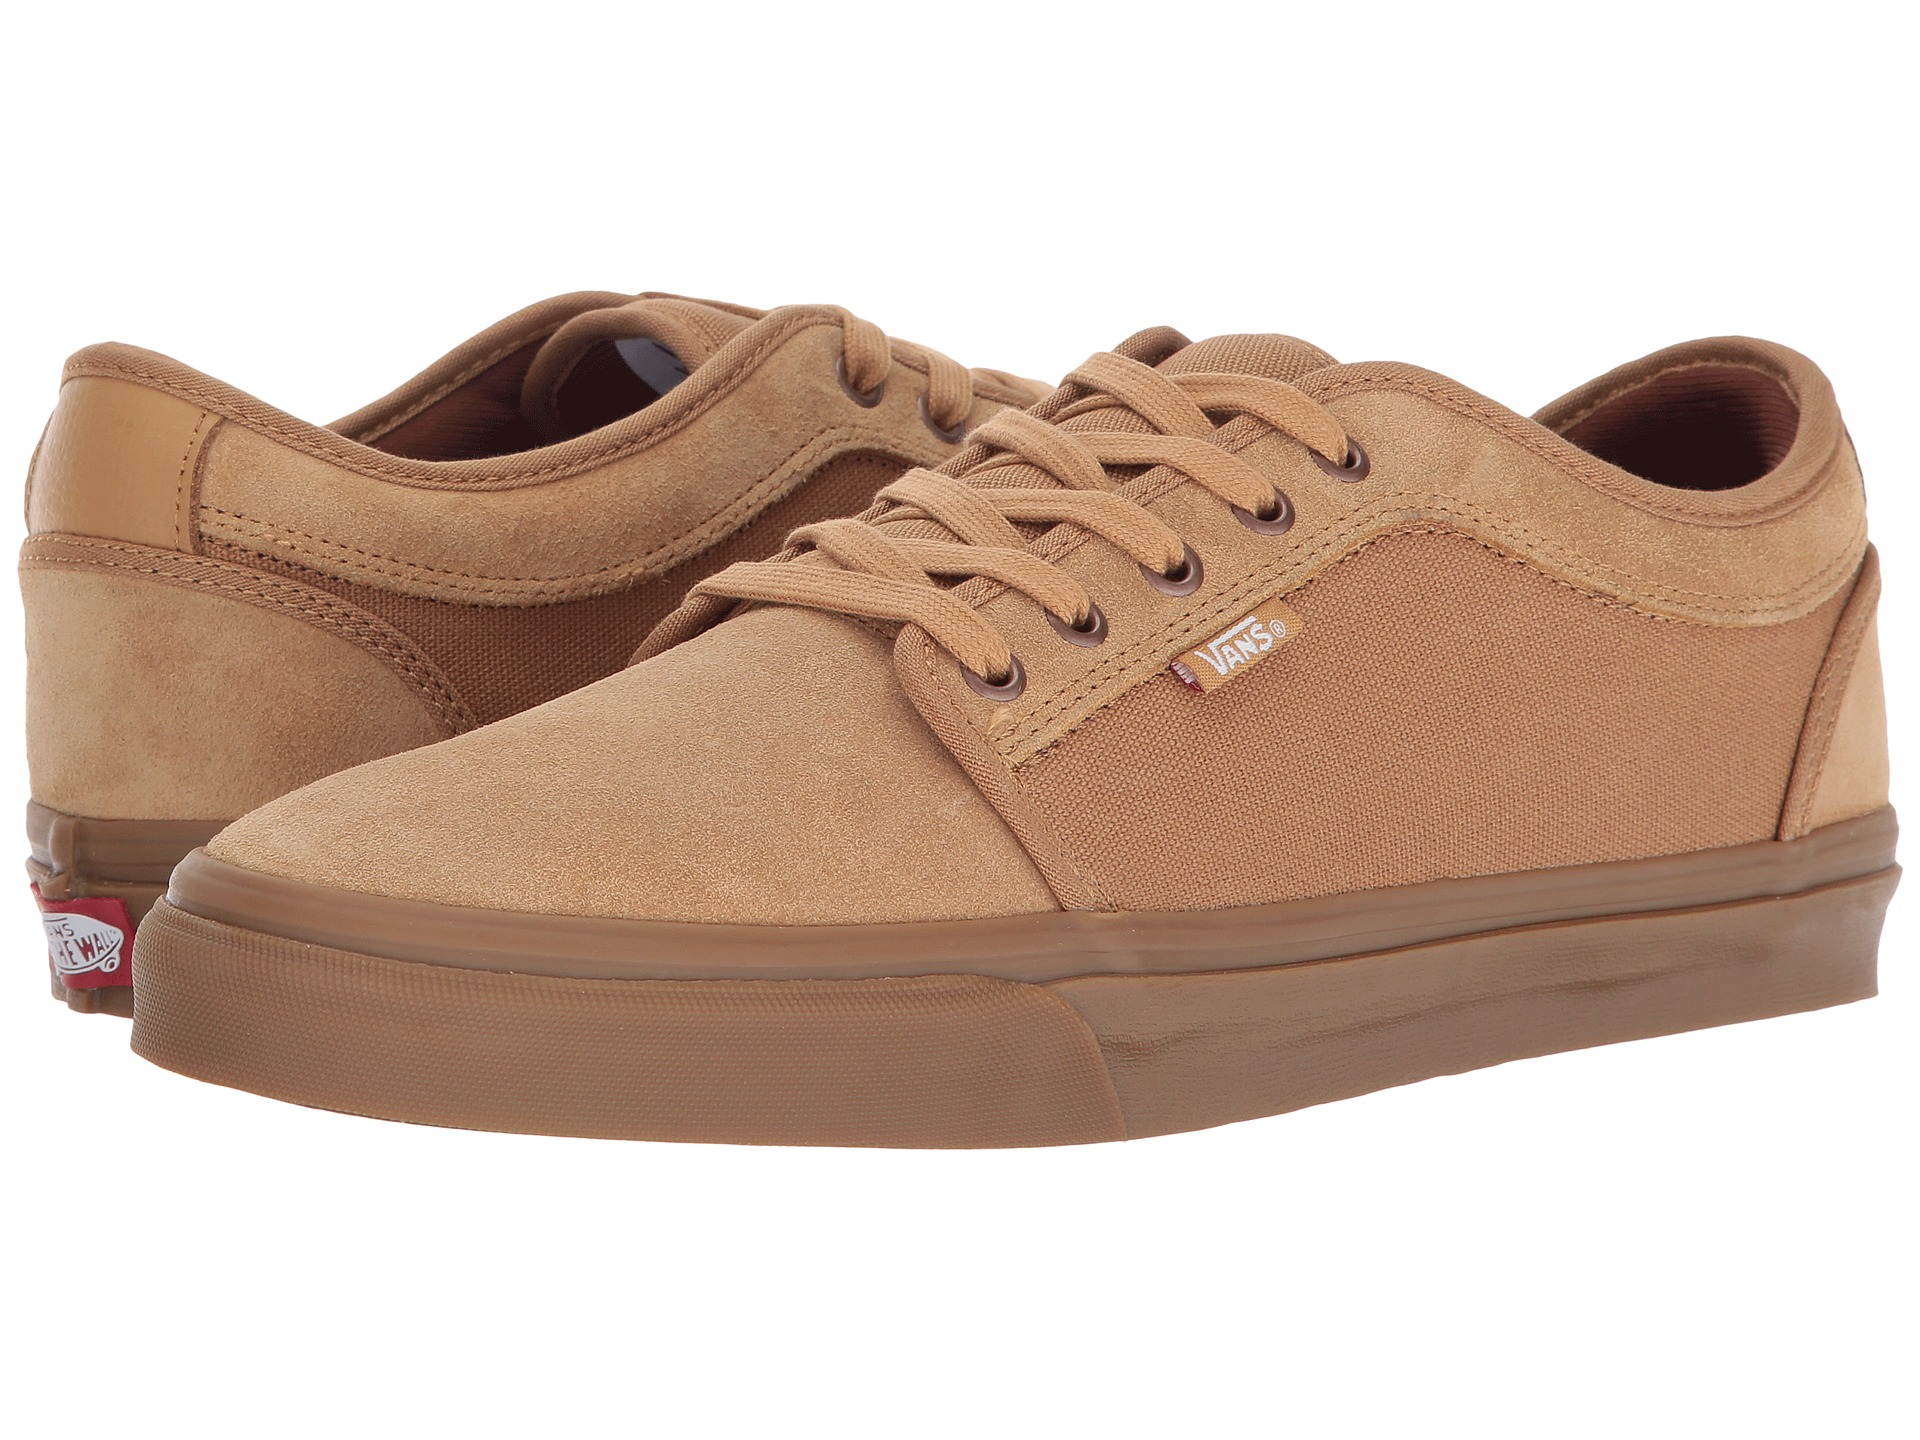 982a470392 Chukka Low - Medal Bronze GumMens - Flying Point Surf